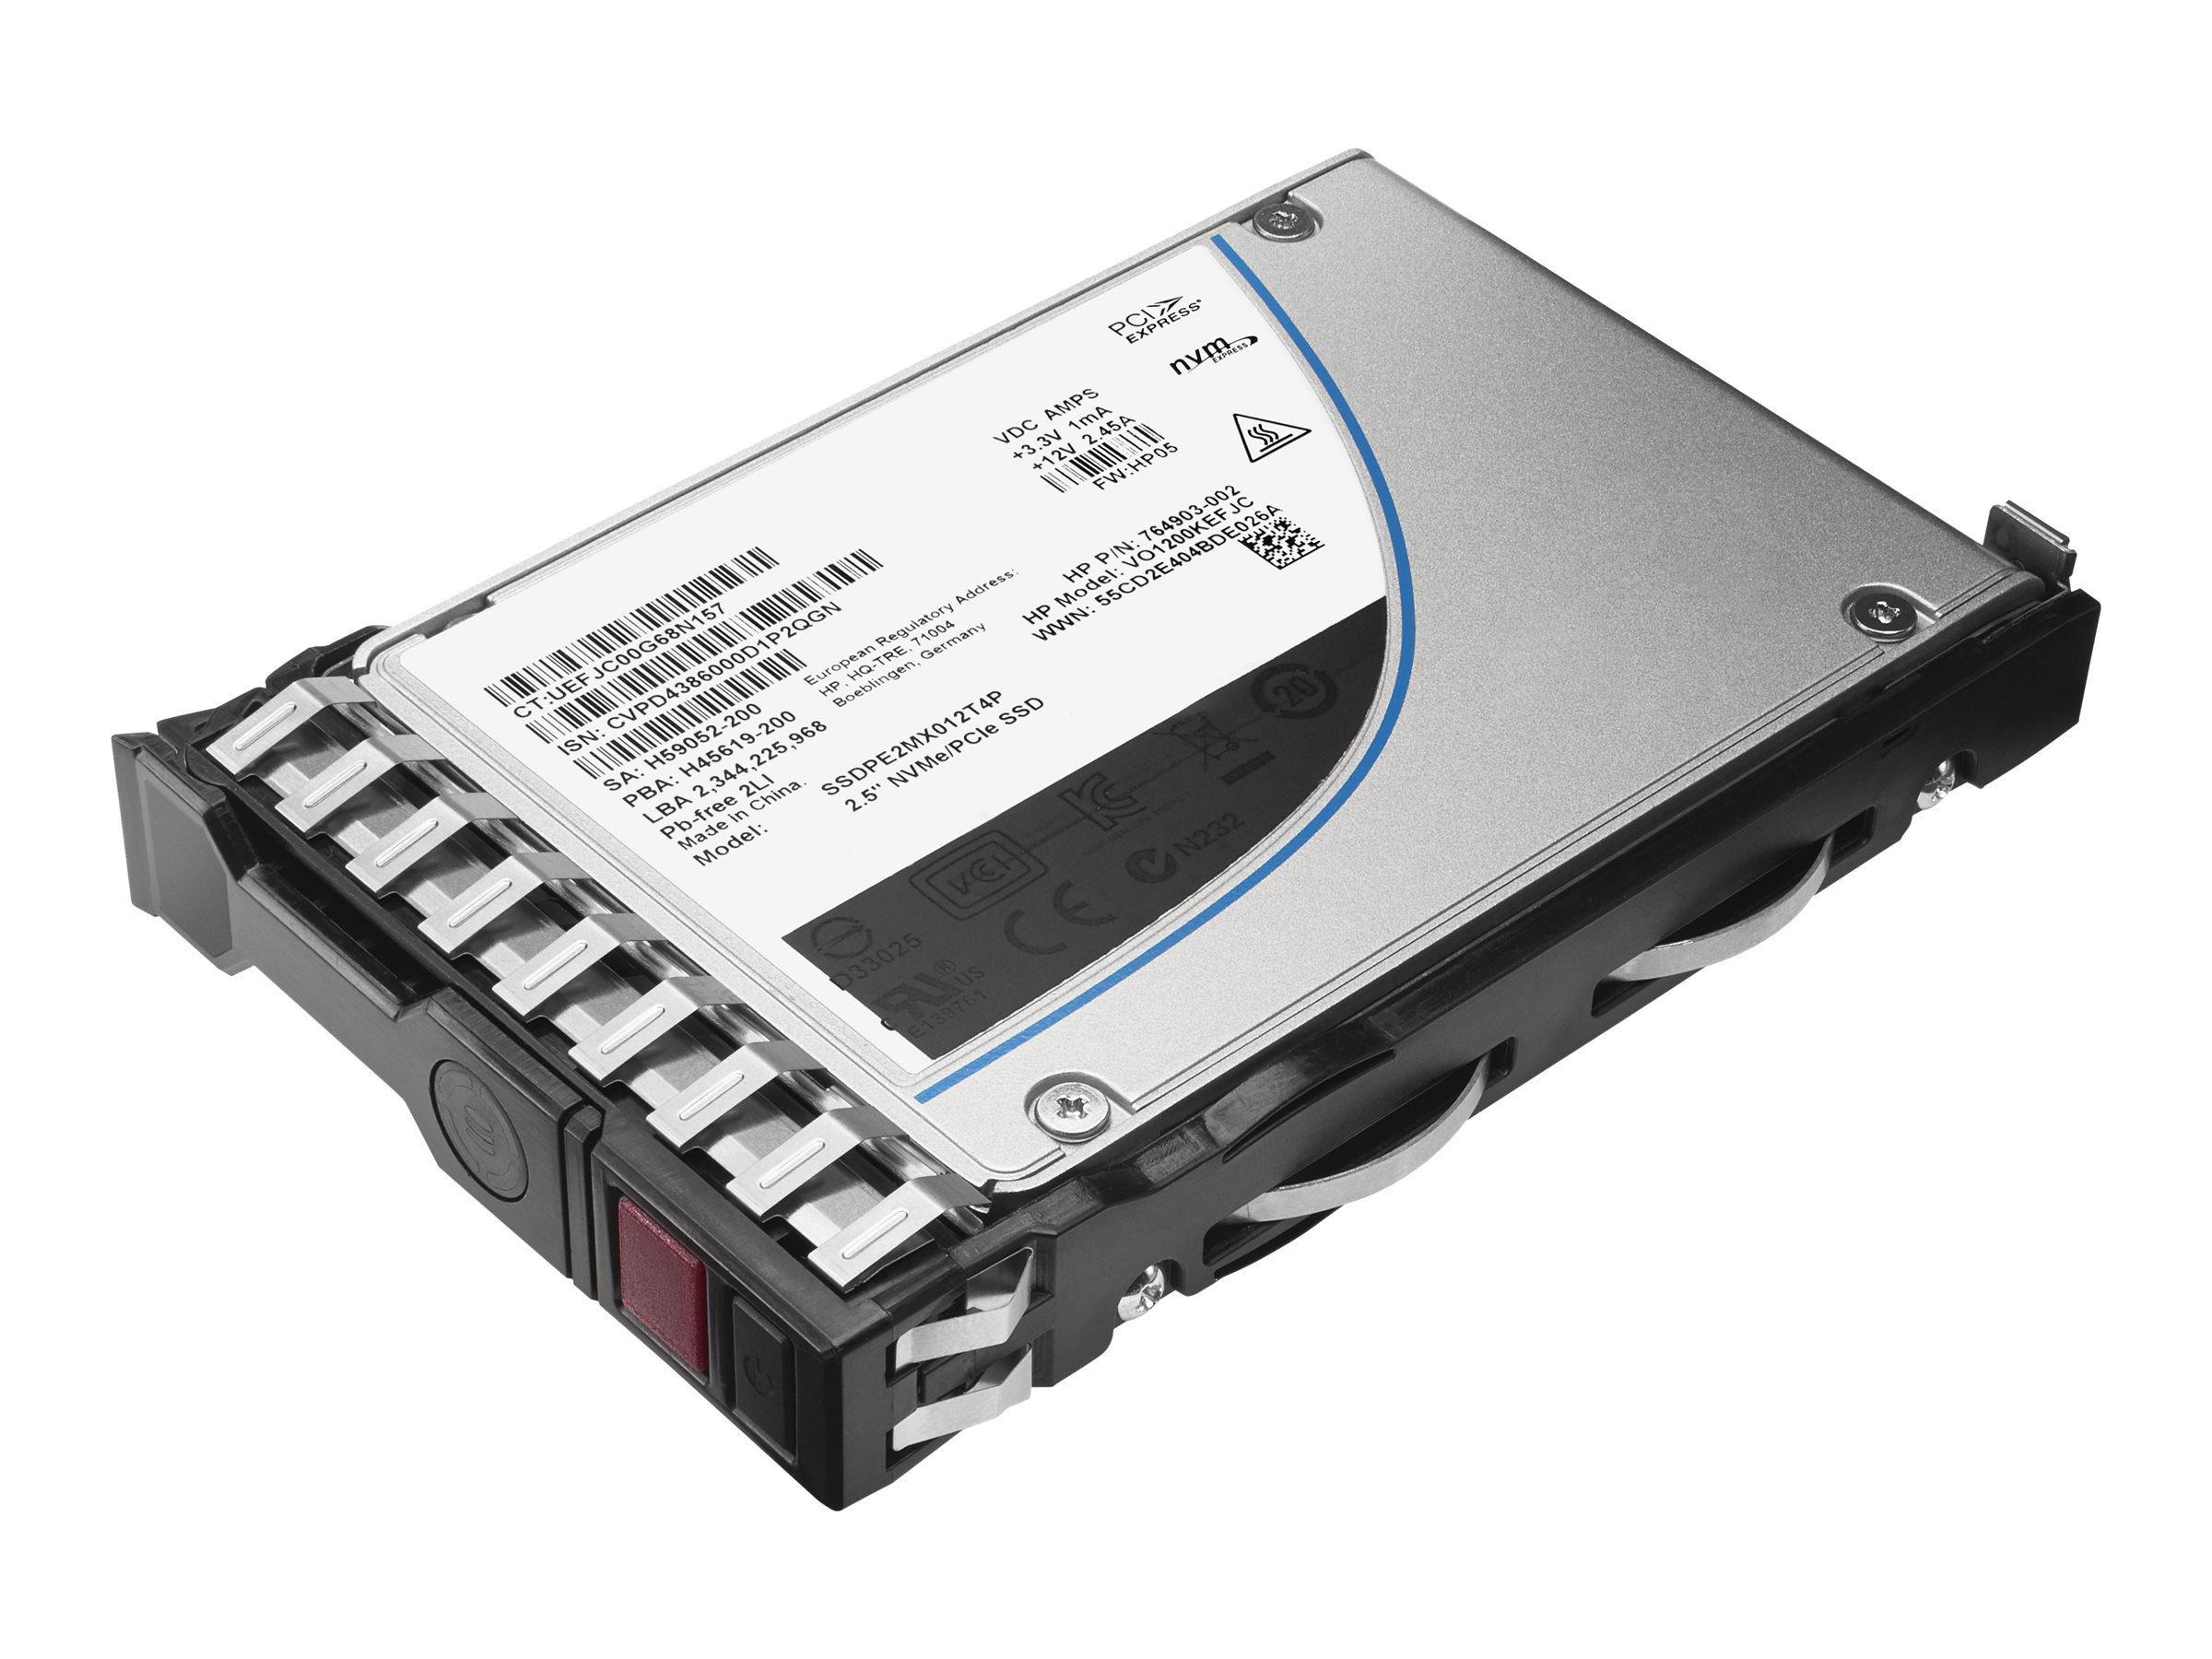 HPE 1.92TB SATA 6Gb s Read Intensive-3 LFF 3.5 SC Converter Solid State Drive